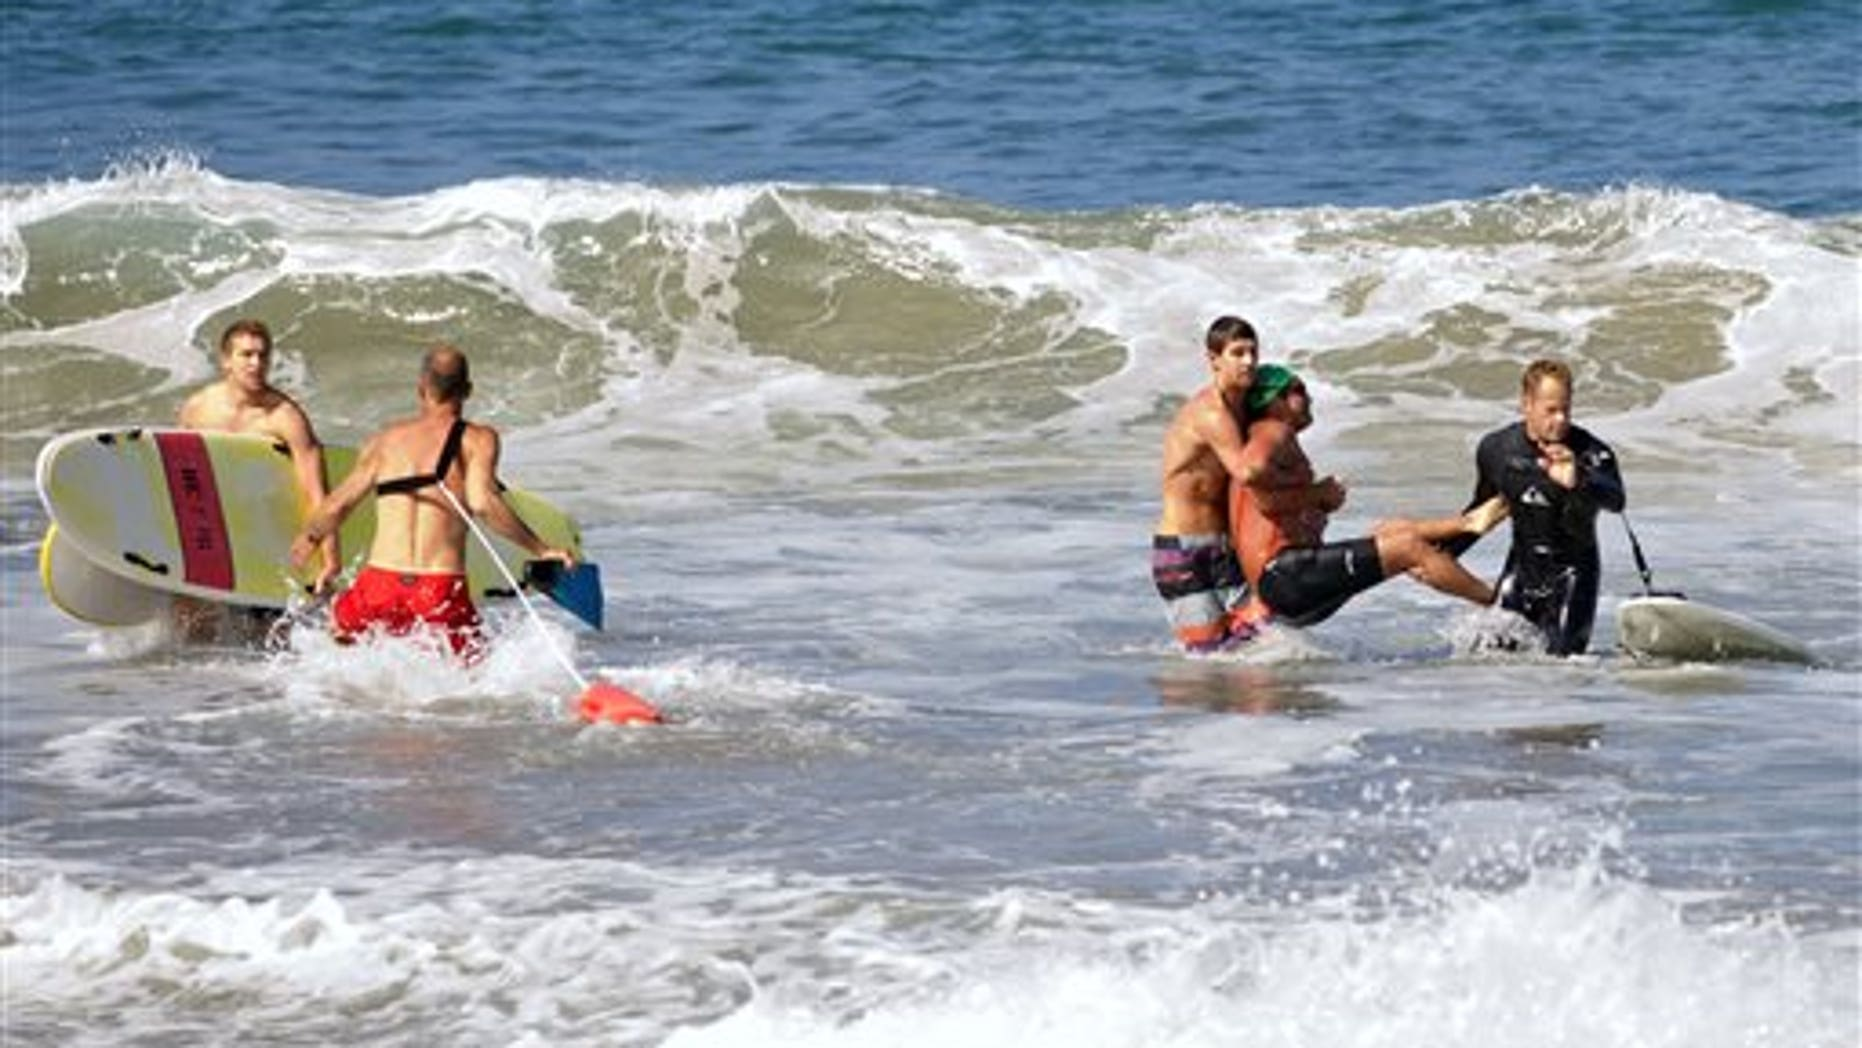 In this photo by Laura Joyce of goofyfootphotography.com, two men carry a swimmer, second from right, after he was bitten by a great white shark, as lifeguards close in at left in the ocean off Southern Californias Manhattan Beach, Saturday, July 5, 2014. The man, who was with a group of long-distance swimmers when he swam into a fishing line, was bitten on a side of his rib cage according to Rick Flores, a Los Angeles County Fire Department spokesman. The mans injuries were not life-threatening and he was taken to a hospital conscious and breathing on his own, Flores said. (AP Photo/goofyfootphotography.com, Laura Joyce)